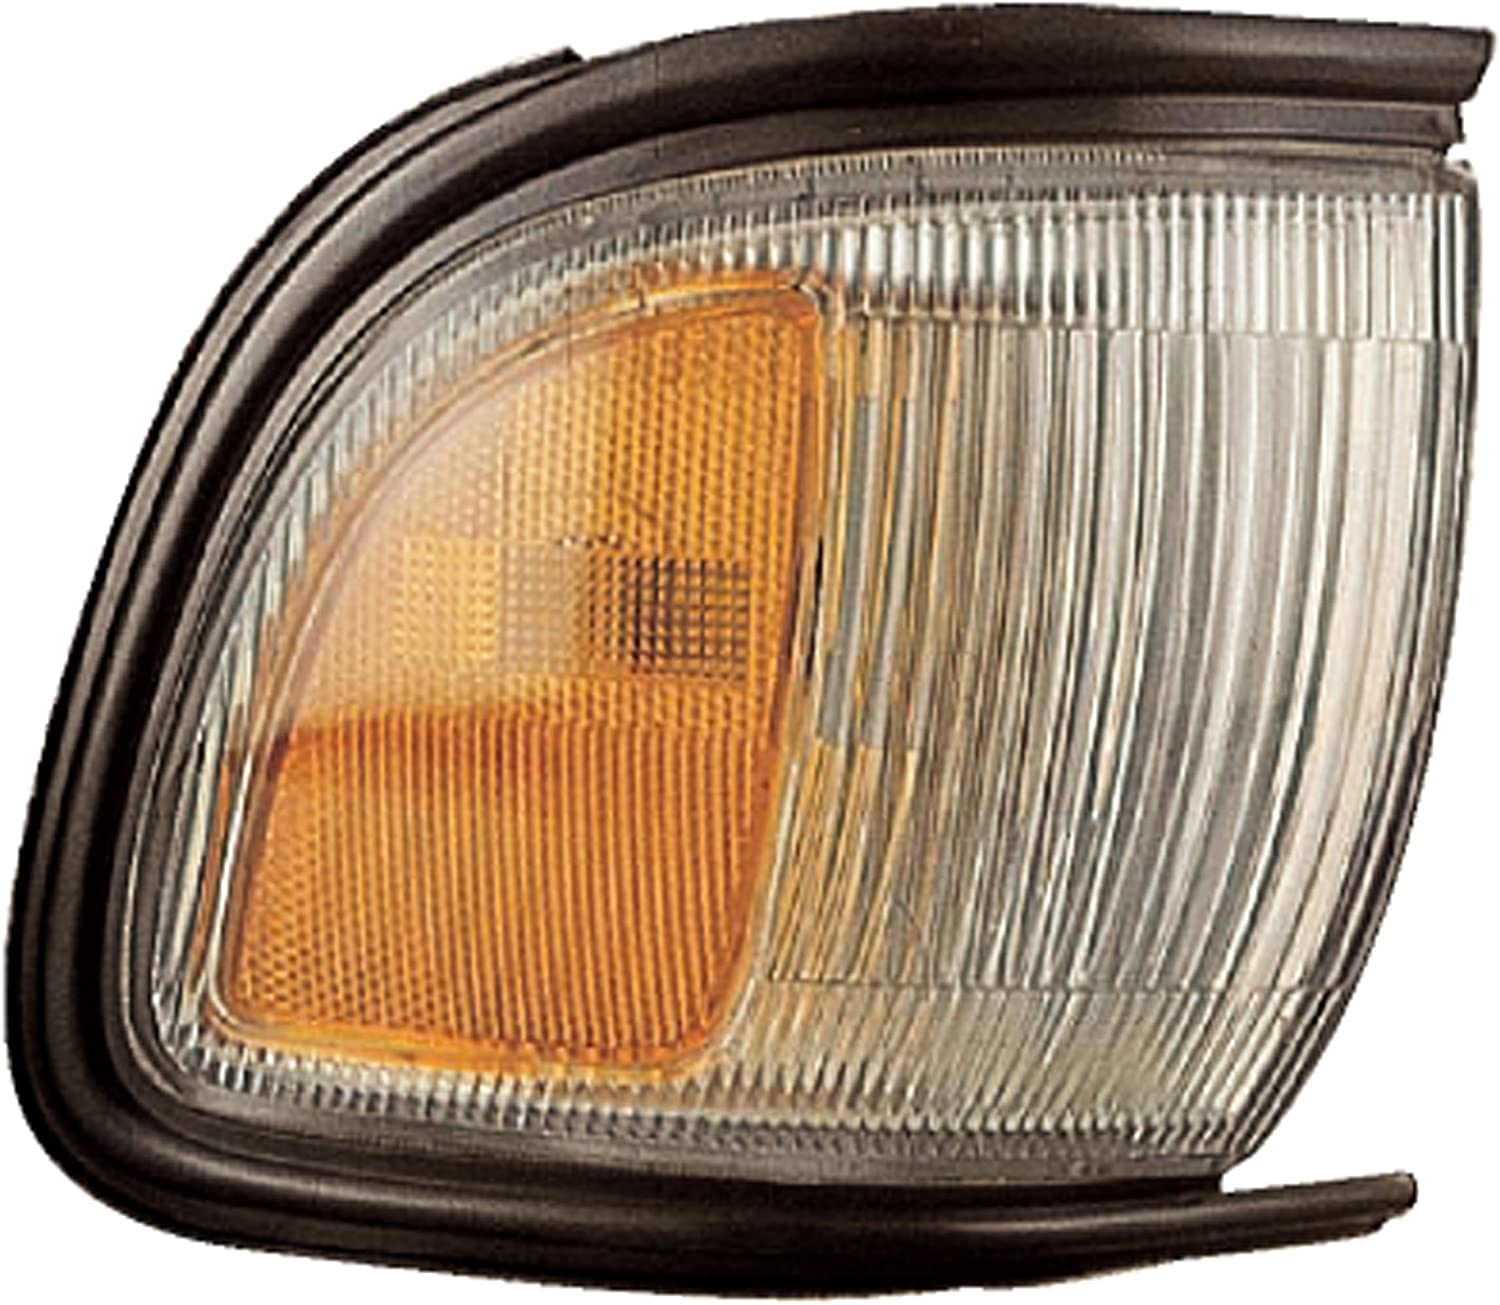 GMC Driver Side Side Marker Light Assembly Dorman 1631210 Chevrolet